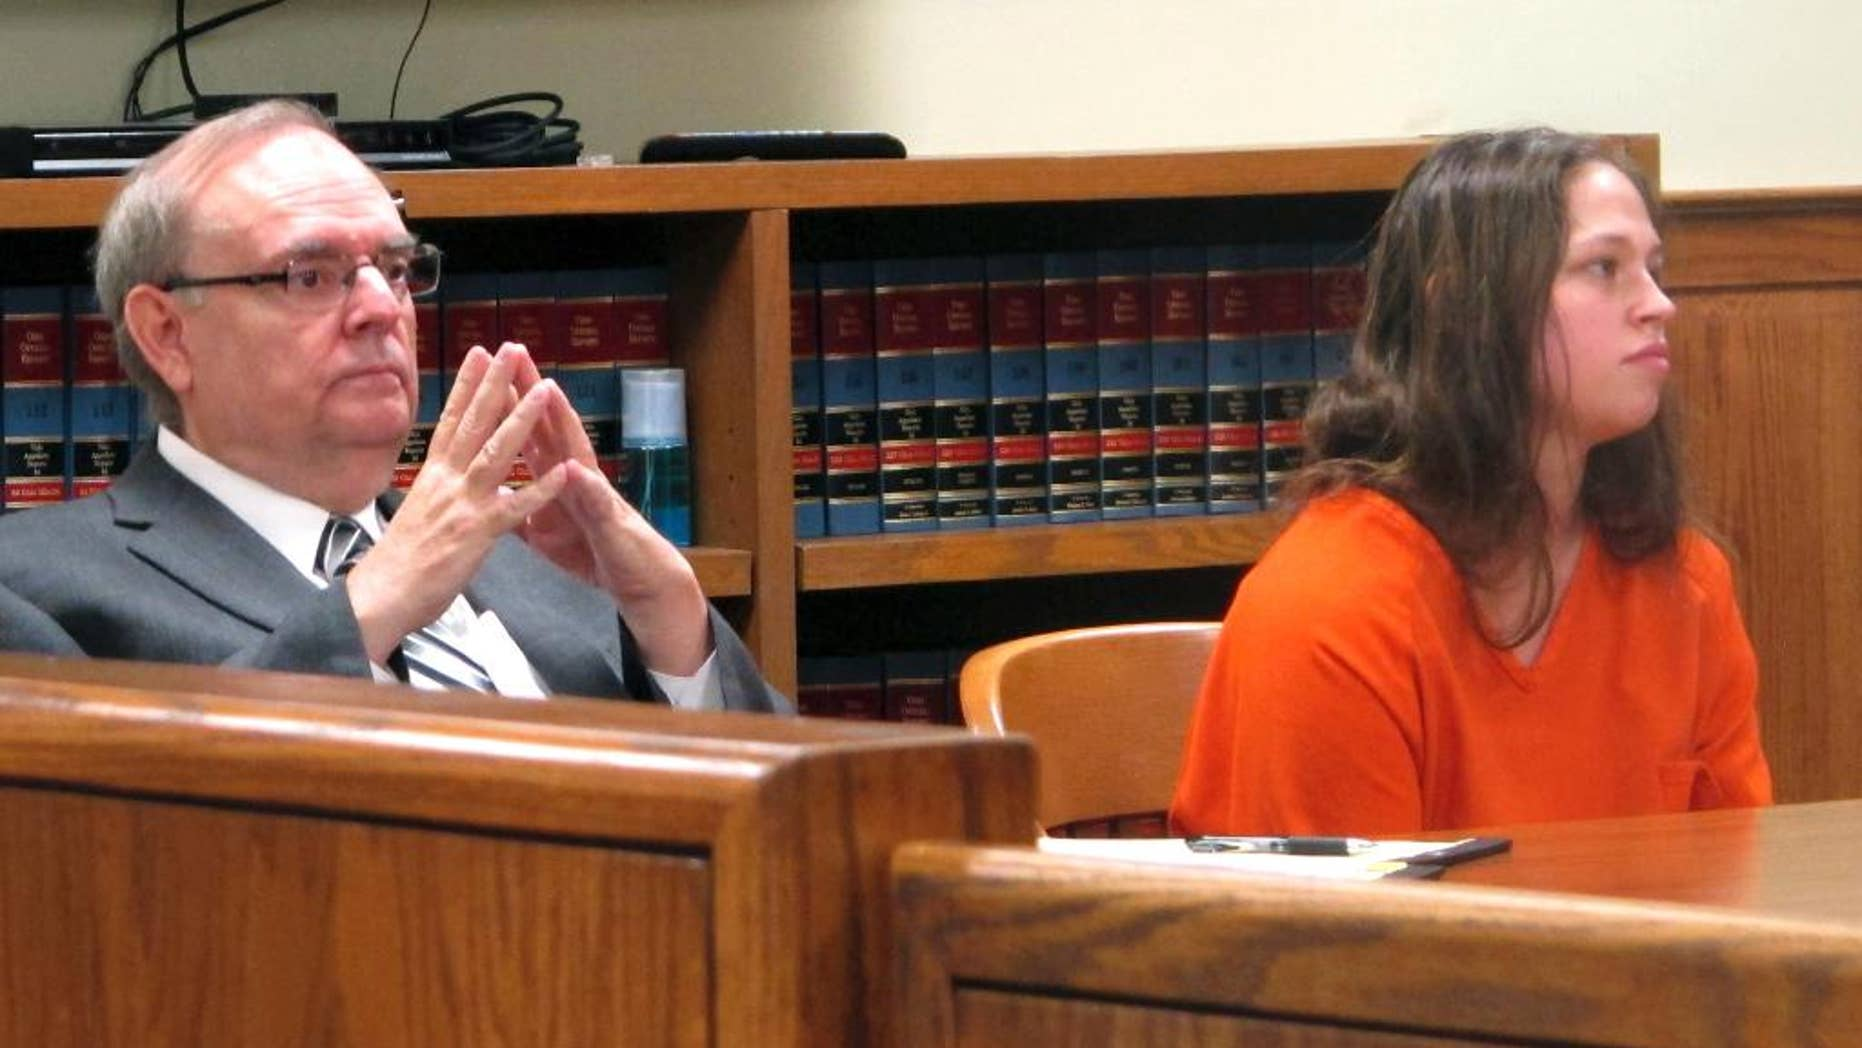 FILE - In this Aug. 20, 2015, file photo, Brittany Pilkington, right, and her attorney, Marc Triplett, listen as a judge sets a bond in Bellefontaine, Ohio. An Ohio judge has delayed the trial of Pilkington, a woman accused of suffocating her three young sons out of jealousy at the attention her husband gave them. The judge granted the extension on Wednesday, Jan. 11, 2017, and ordered all motions to be filed by March 17. (AP Photo/Andrew Welsh-Huggins, File)